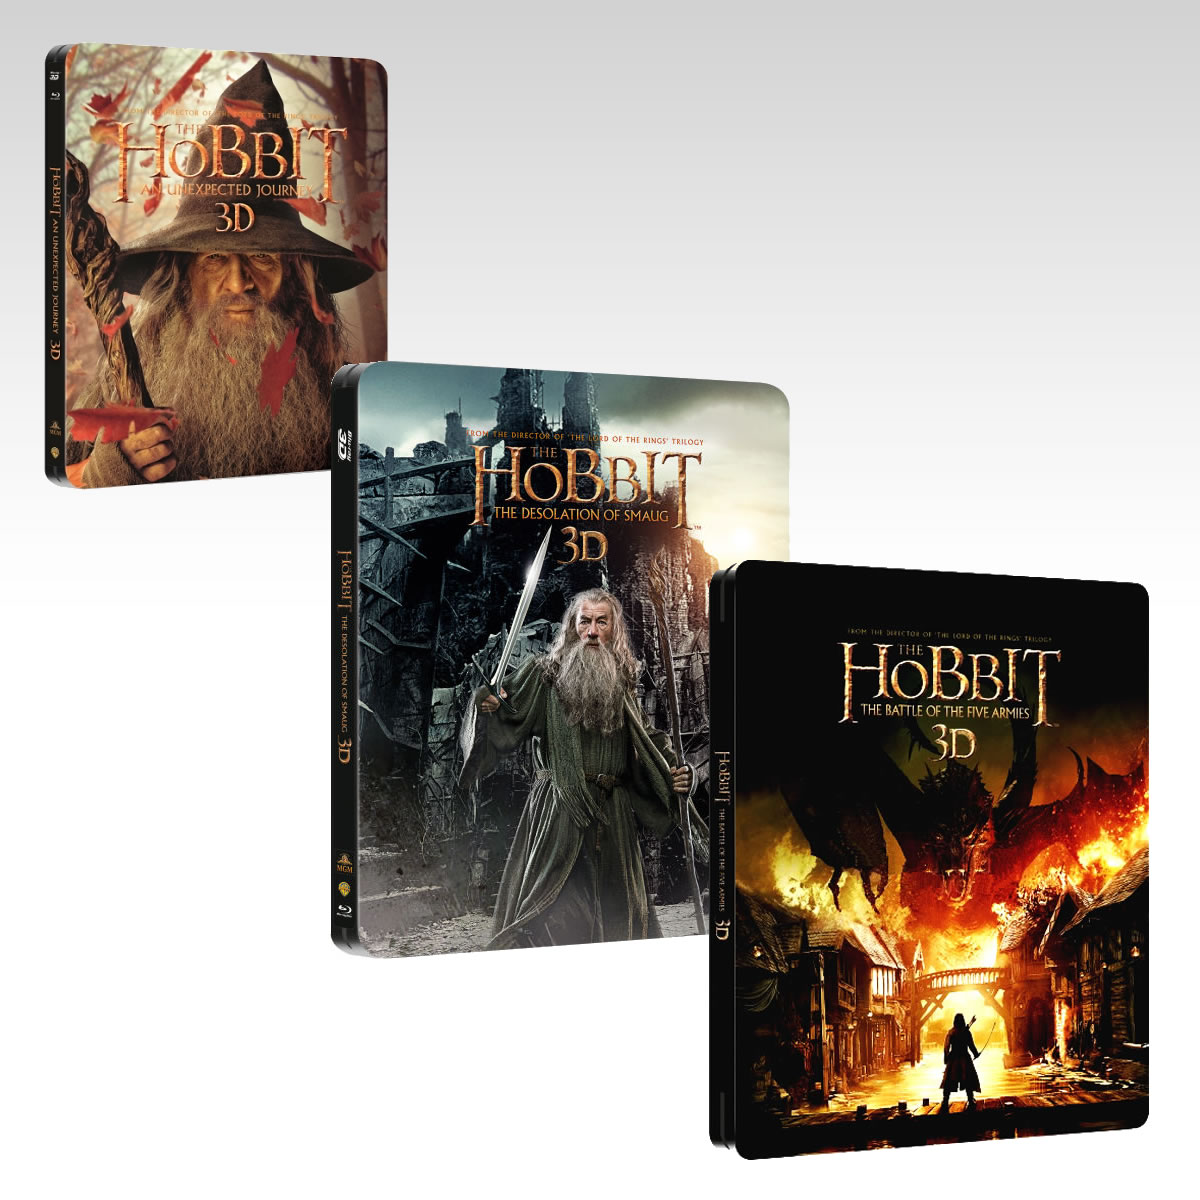 THE HOBBIT: AN UNEXPECTED JOURNEY 3D+THE HOBBIT: THE DESOLATION OF SMAUG 3D+THE HOBBIT: THE BATTLE OF THE FIVE ARMIES 3D 3x Steelbooks (BD 3D + BD)